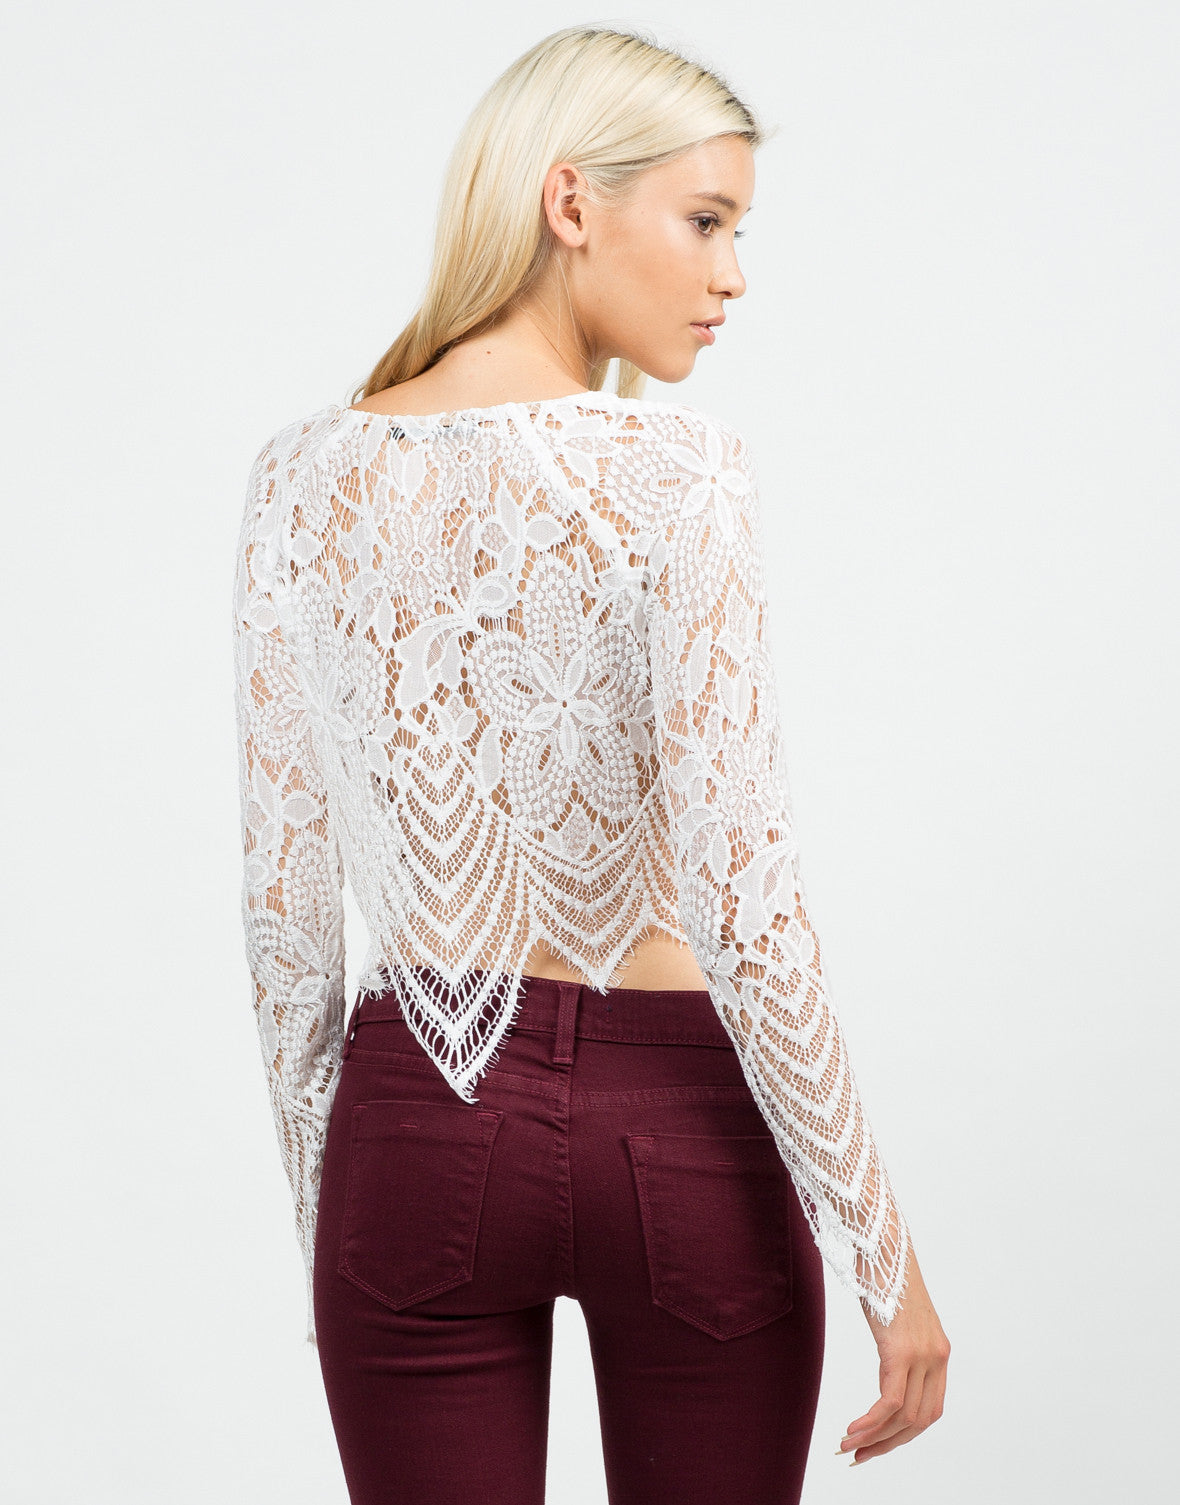 Back View of Floral Lace Crop Top